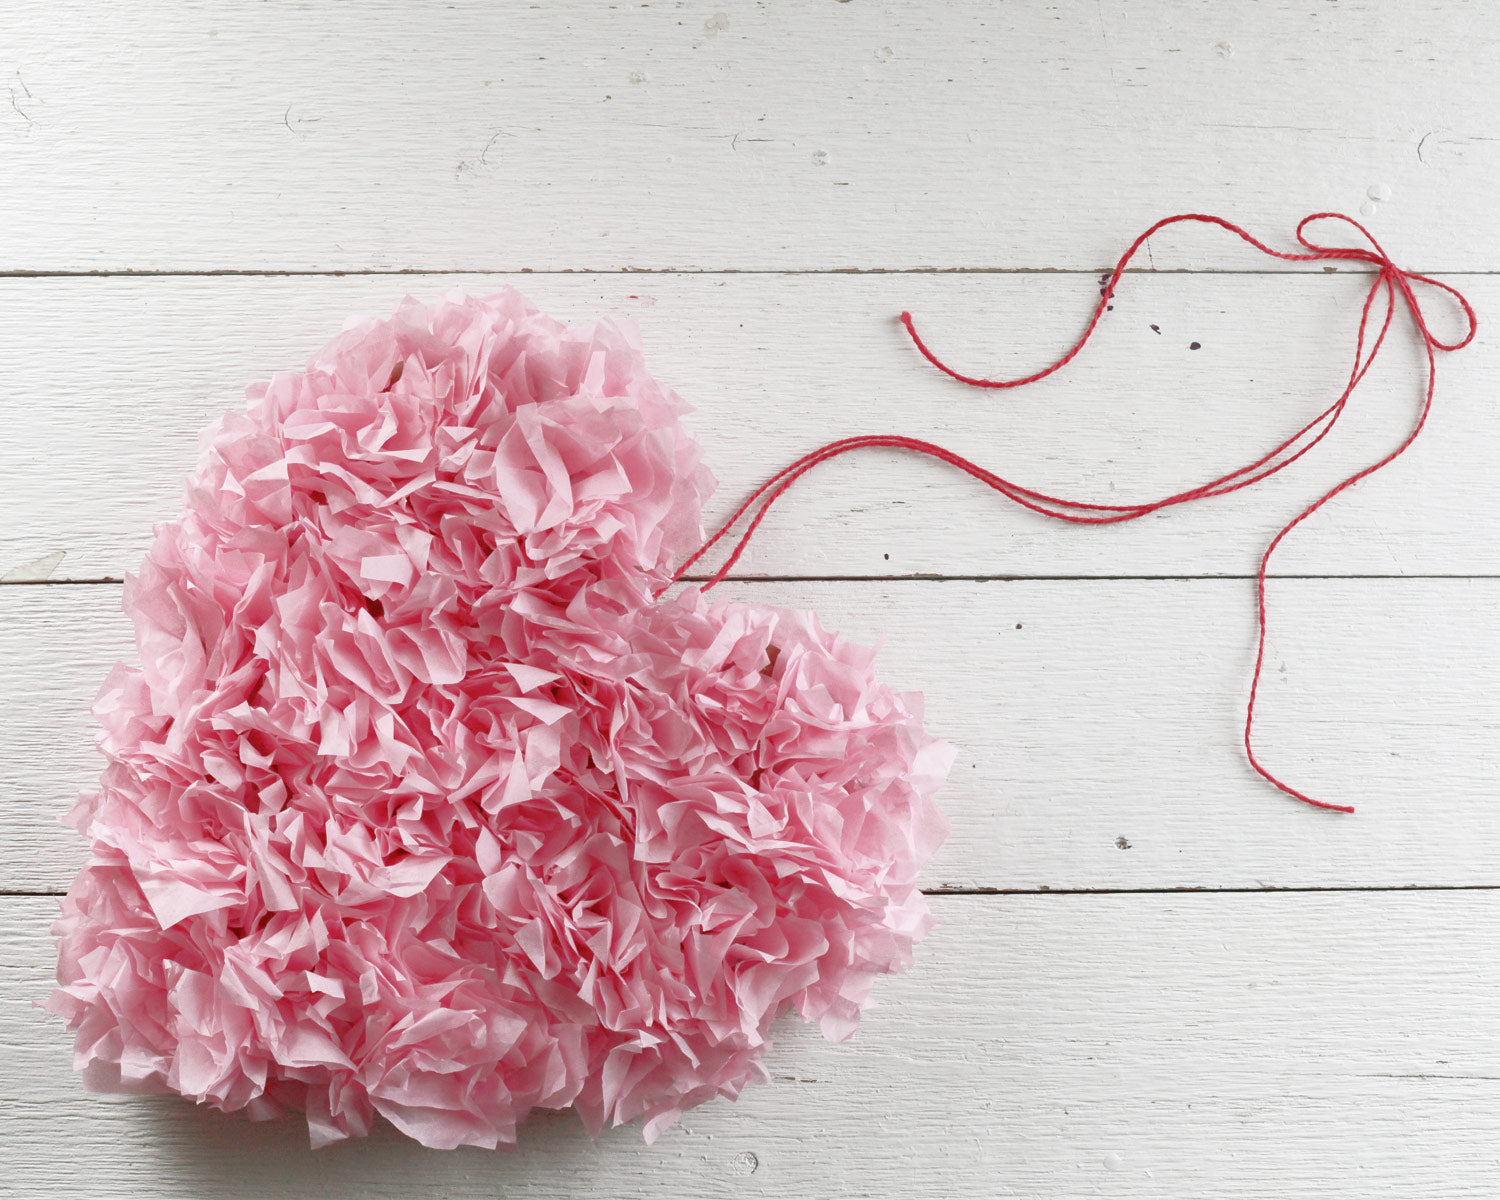 Tissue Paper Heart Craft Project